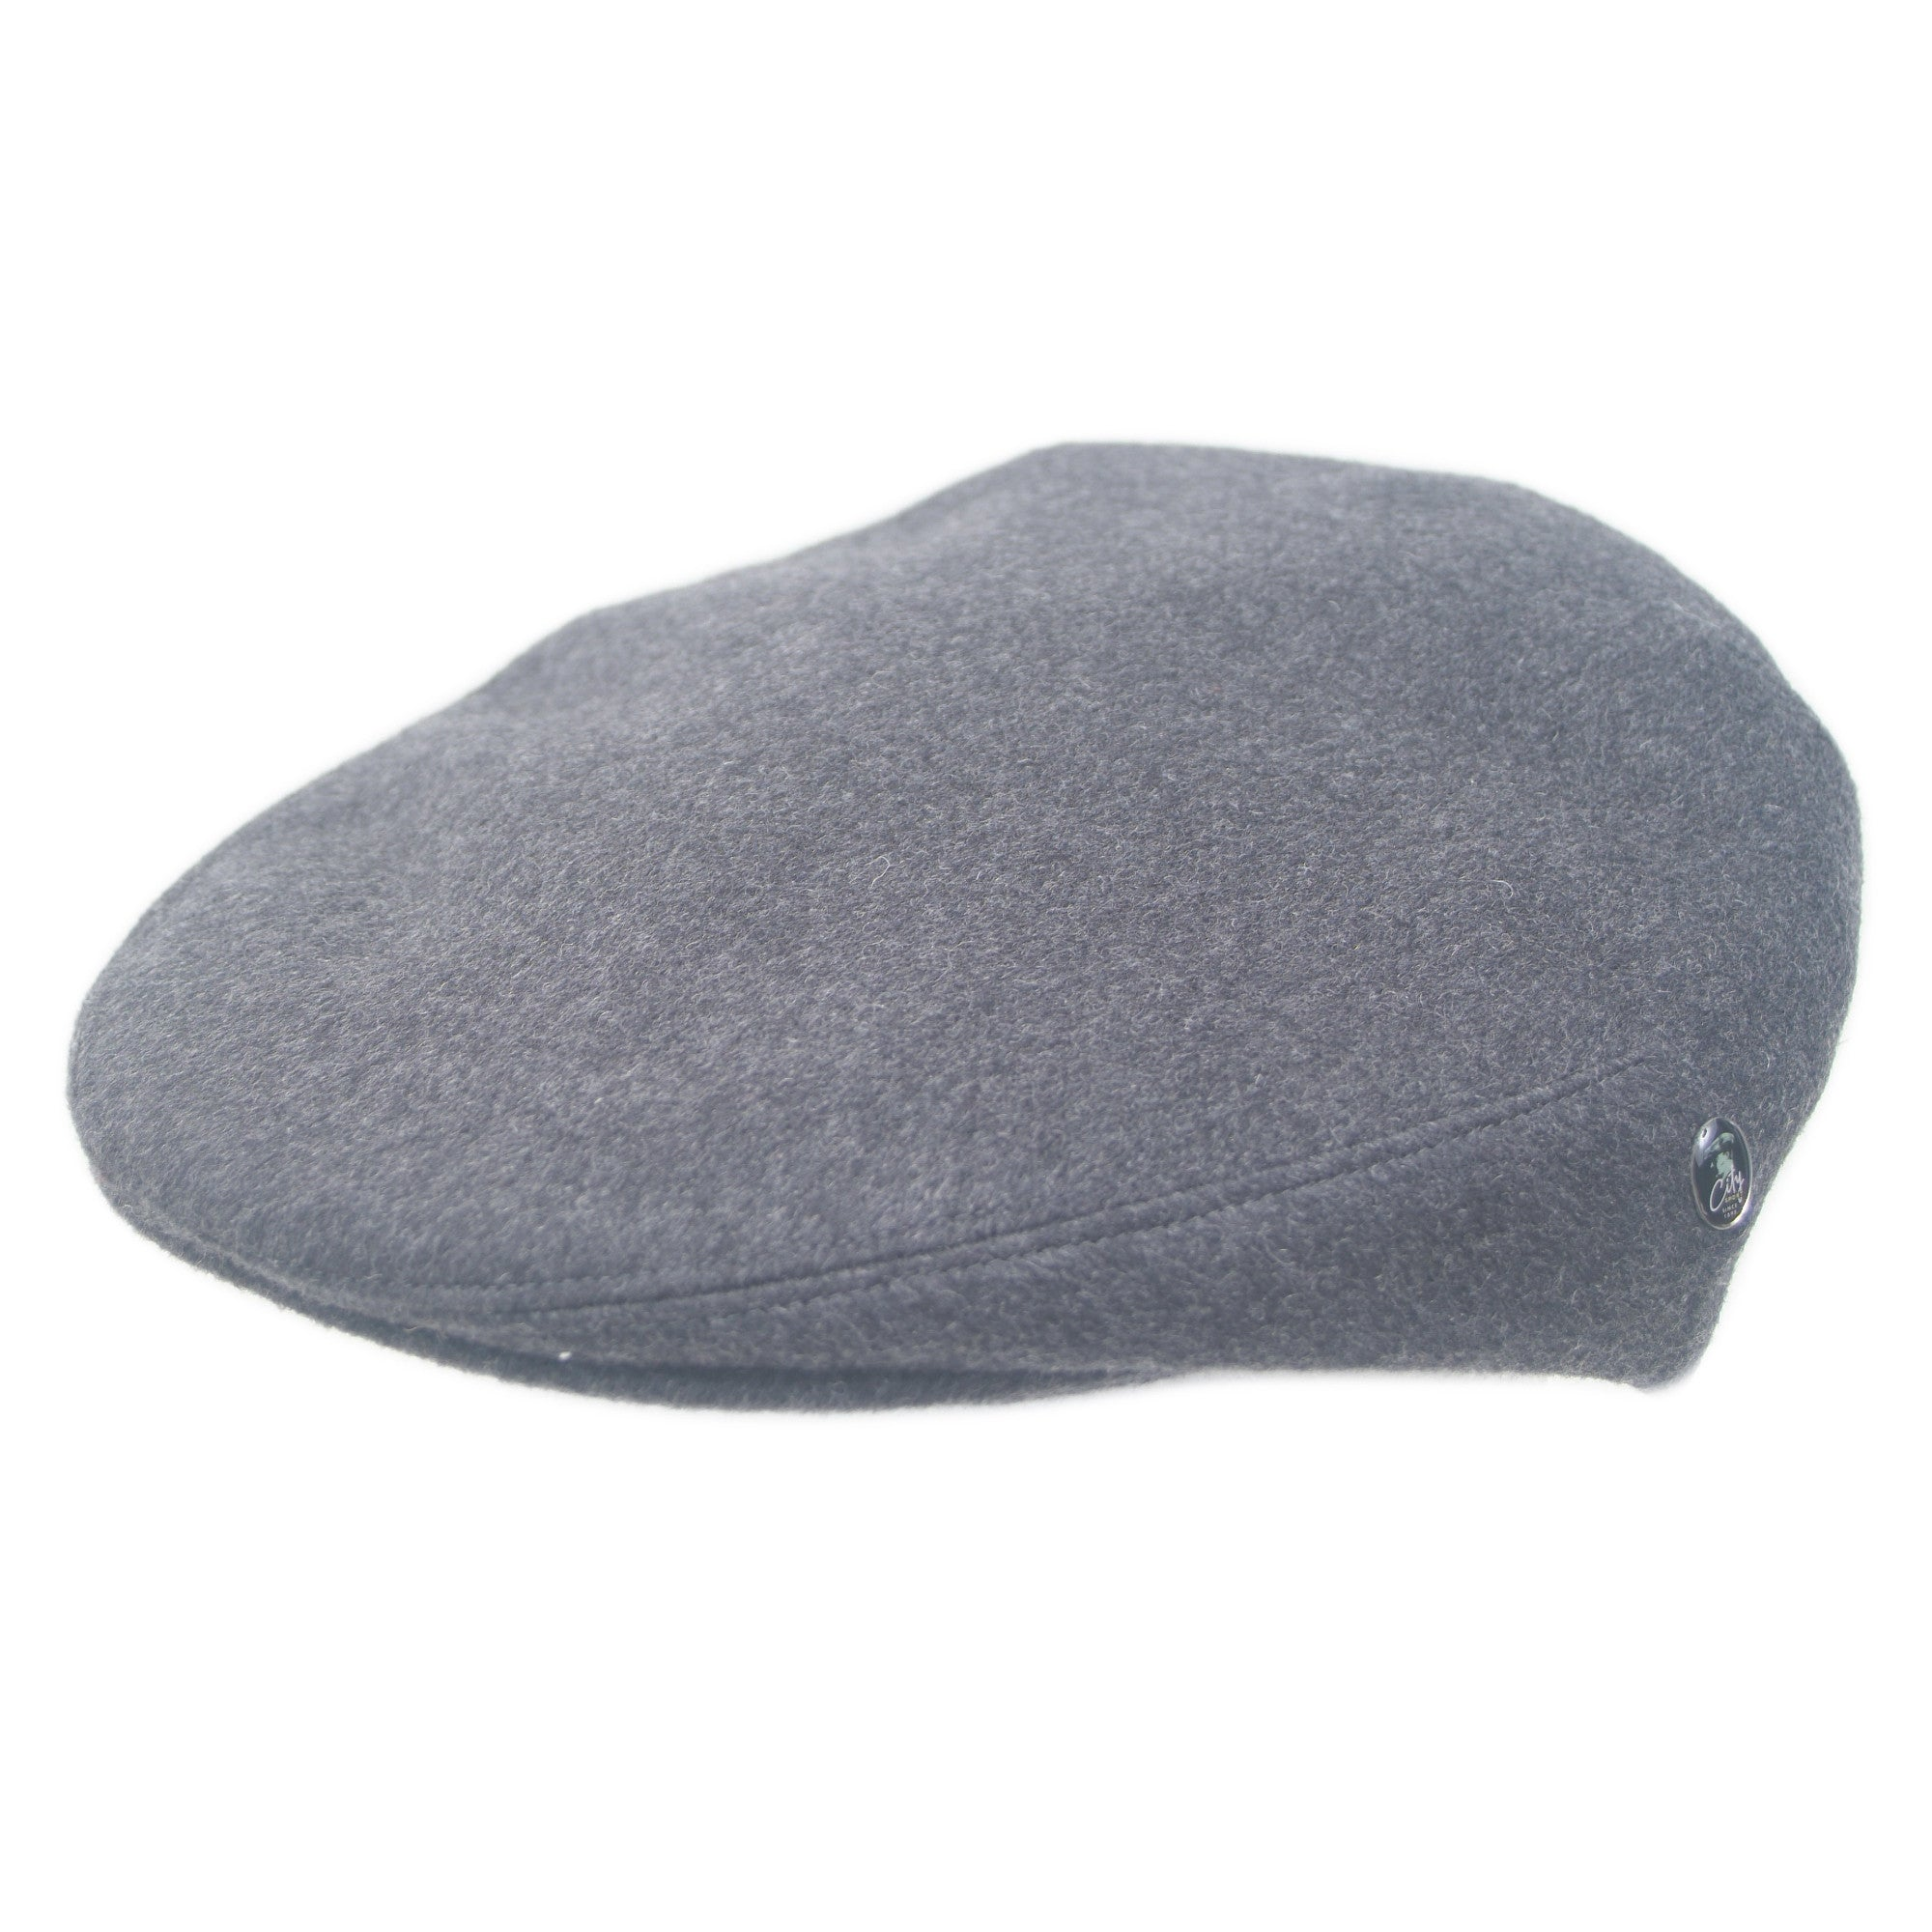 Charcoal Grey Mens Flat Cap | Loden by City Sport| buy now at The Cashmere Choice London